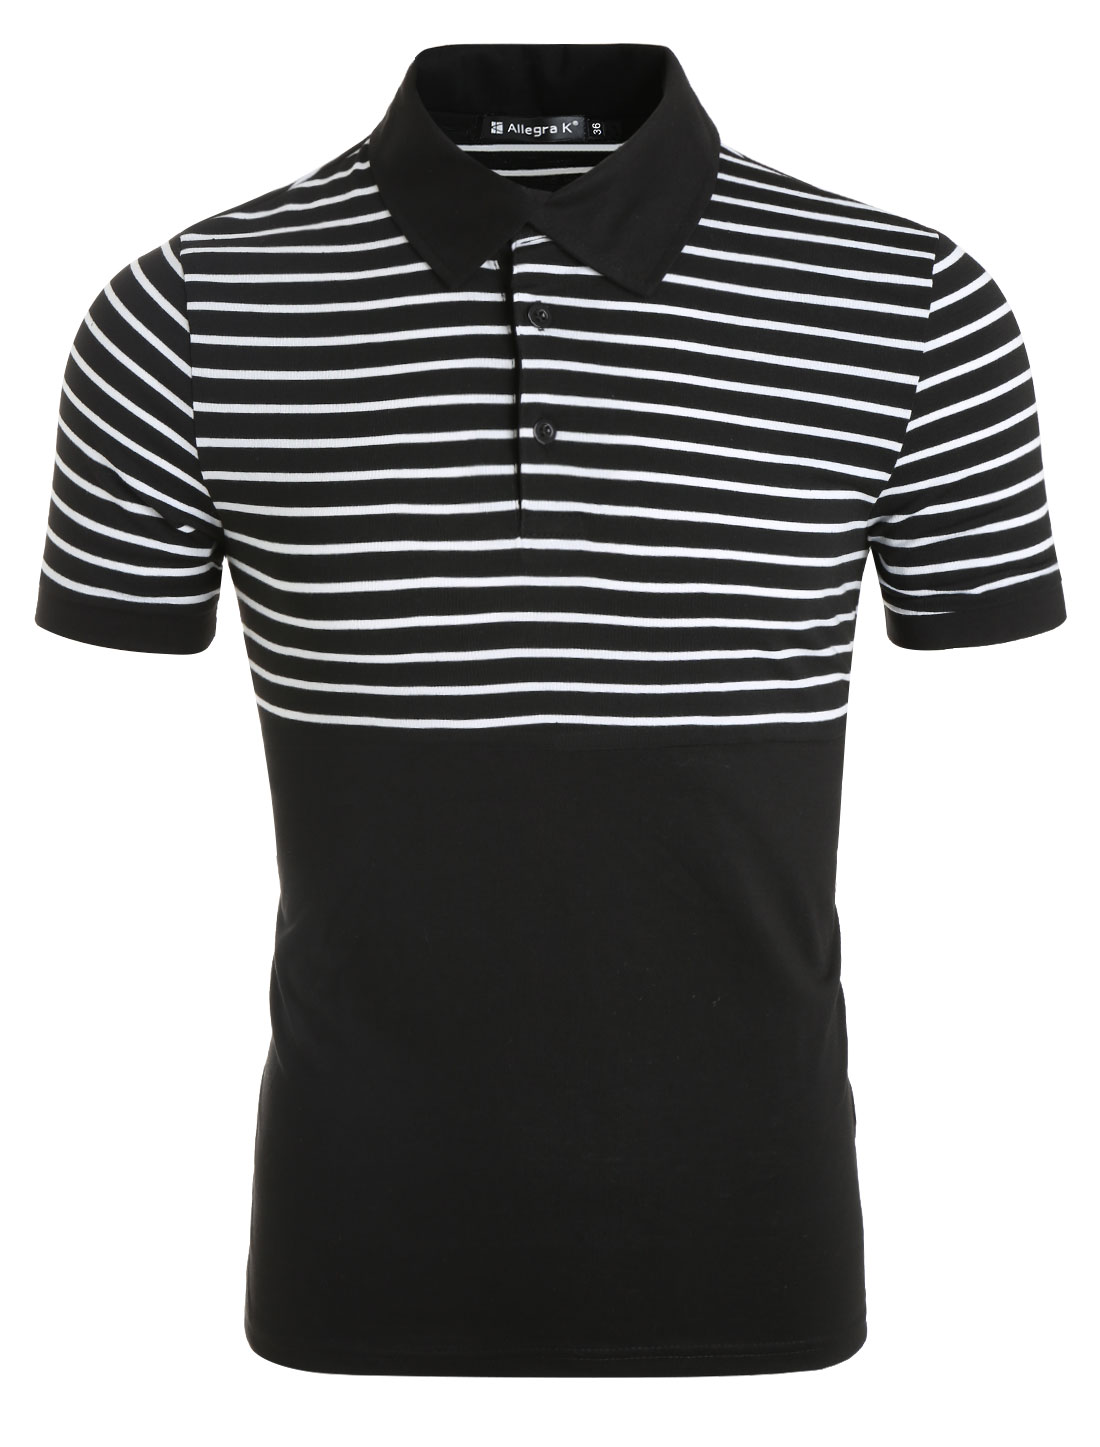 Men Striped Leisure Short Sleeves Polo Shirt Black S